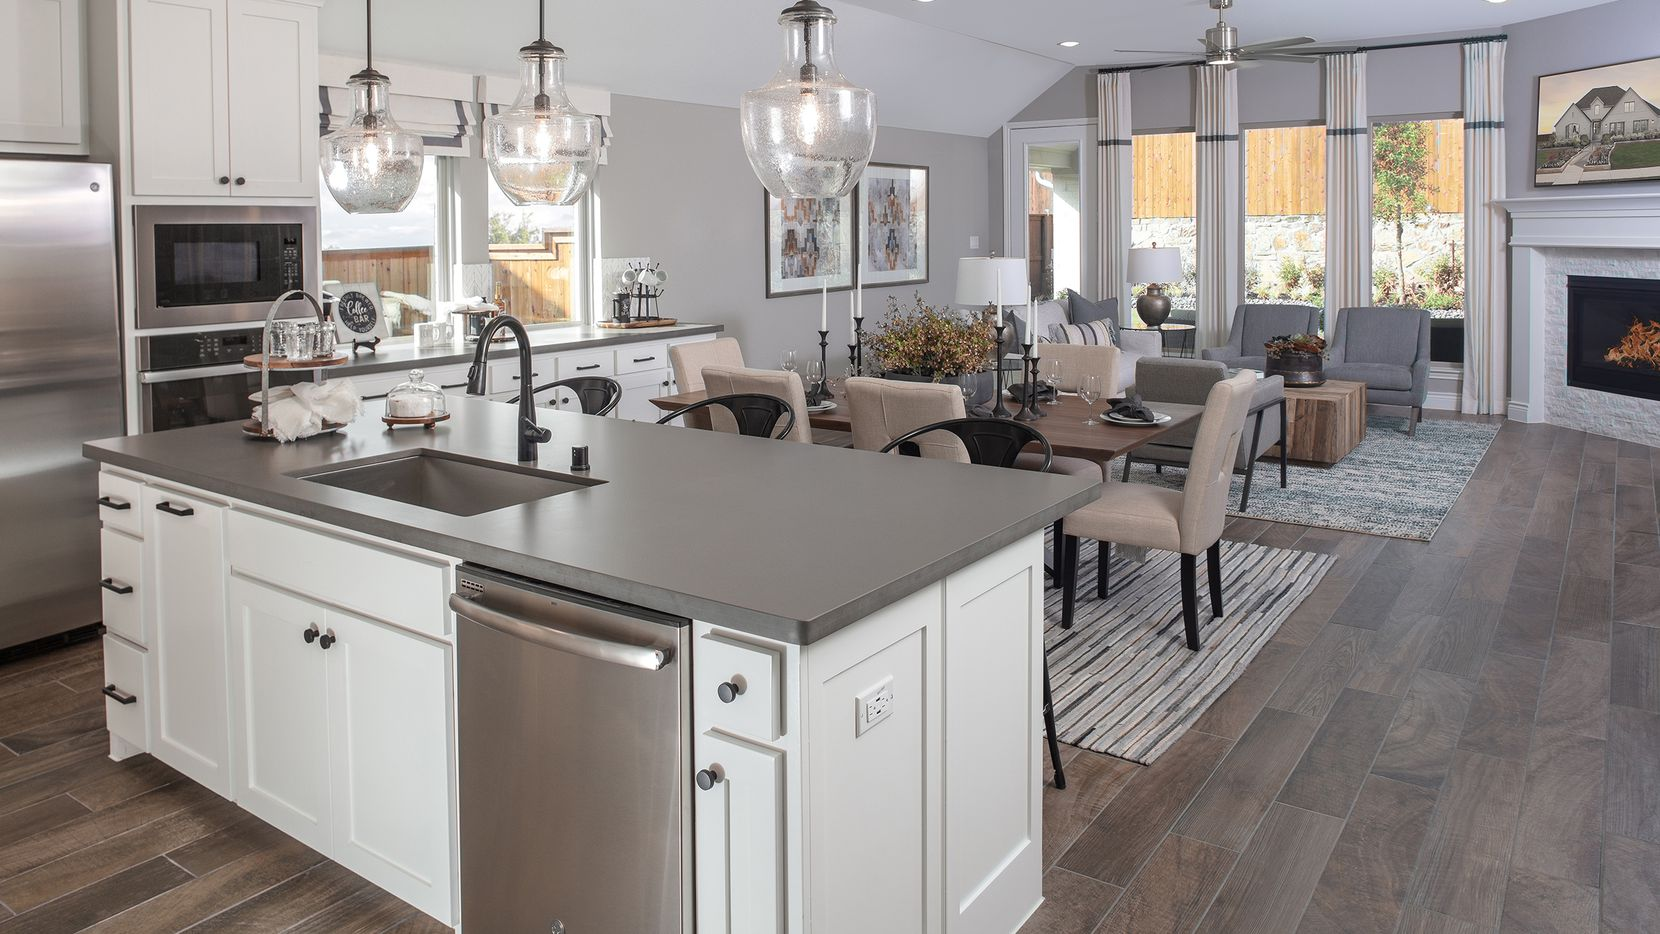 The Perry Homes model at 2316 Sorrelwood Court is located in the Mustang Lakes community in Celina.